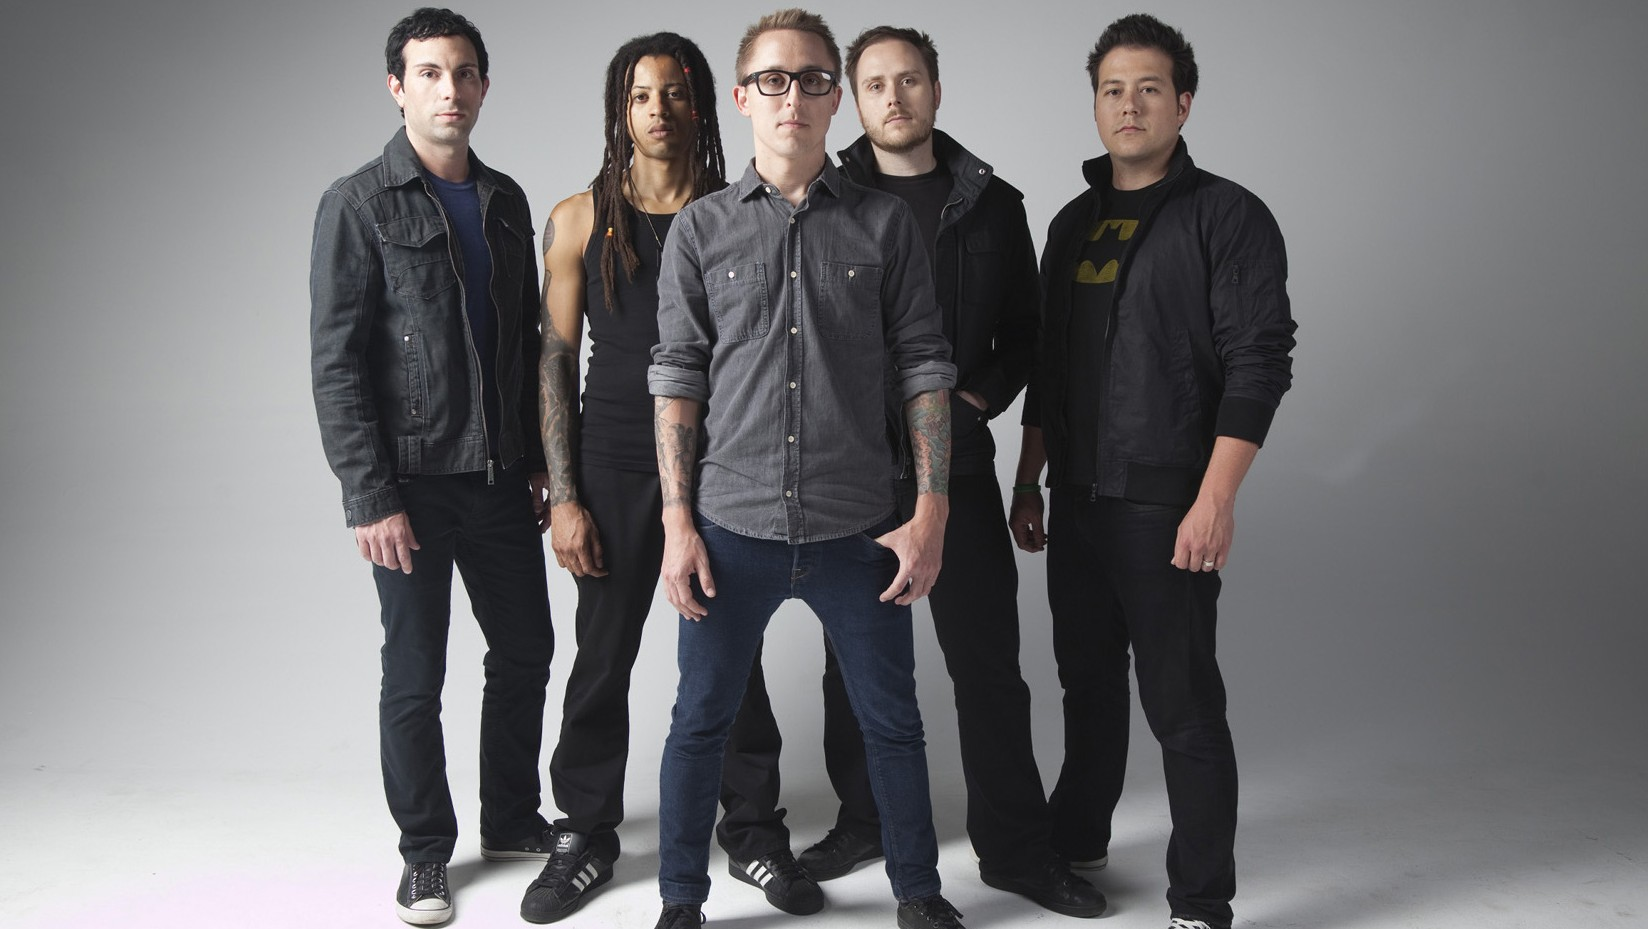 Yellowcard will perform at Record Theatre on Saturday as part of Record Store Day activities. The band will later play at Town Ballroom.